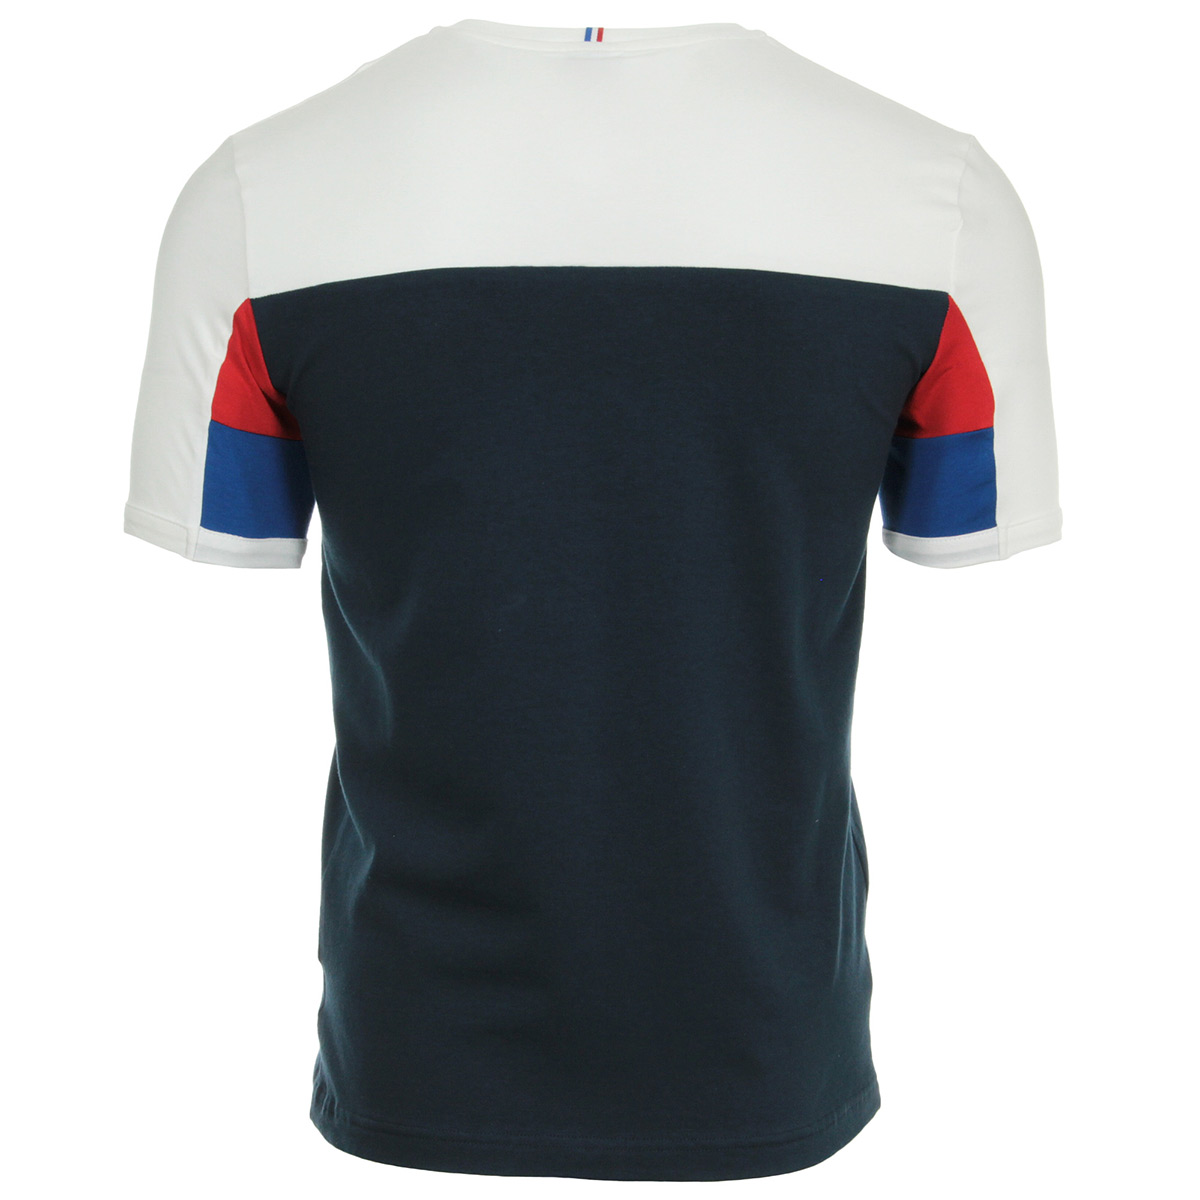 Le Coq Sportif Inspi Football Tee SS n°1 1810679, T-Shirts homme